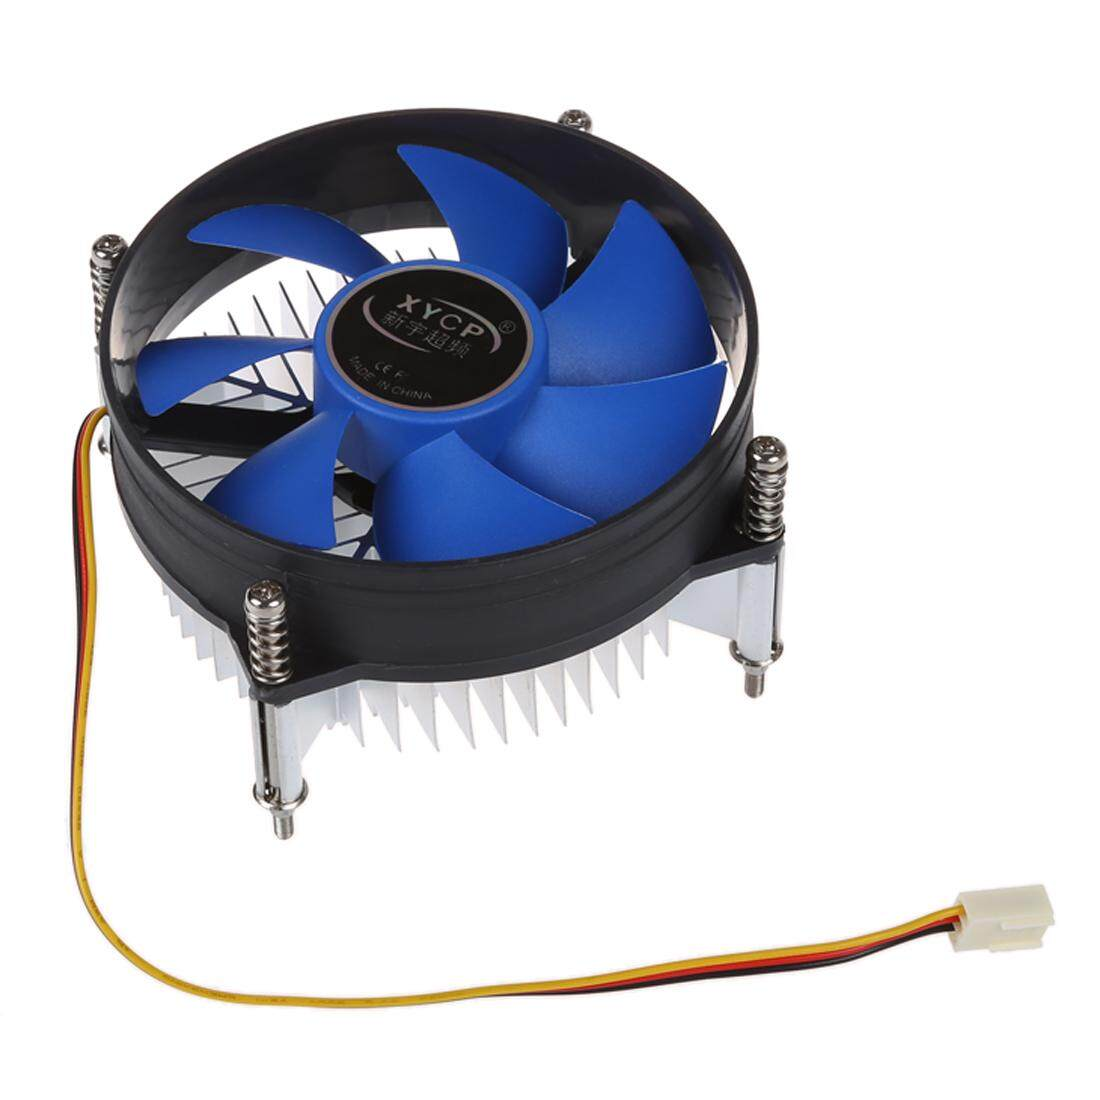 XYCP Processor Cooler CPU Heat Sink for 65W Intel Socket LGA 1155/1156 Core i3 / i5 / i7 Blue